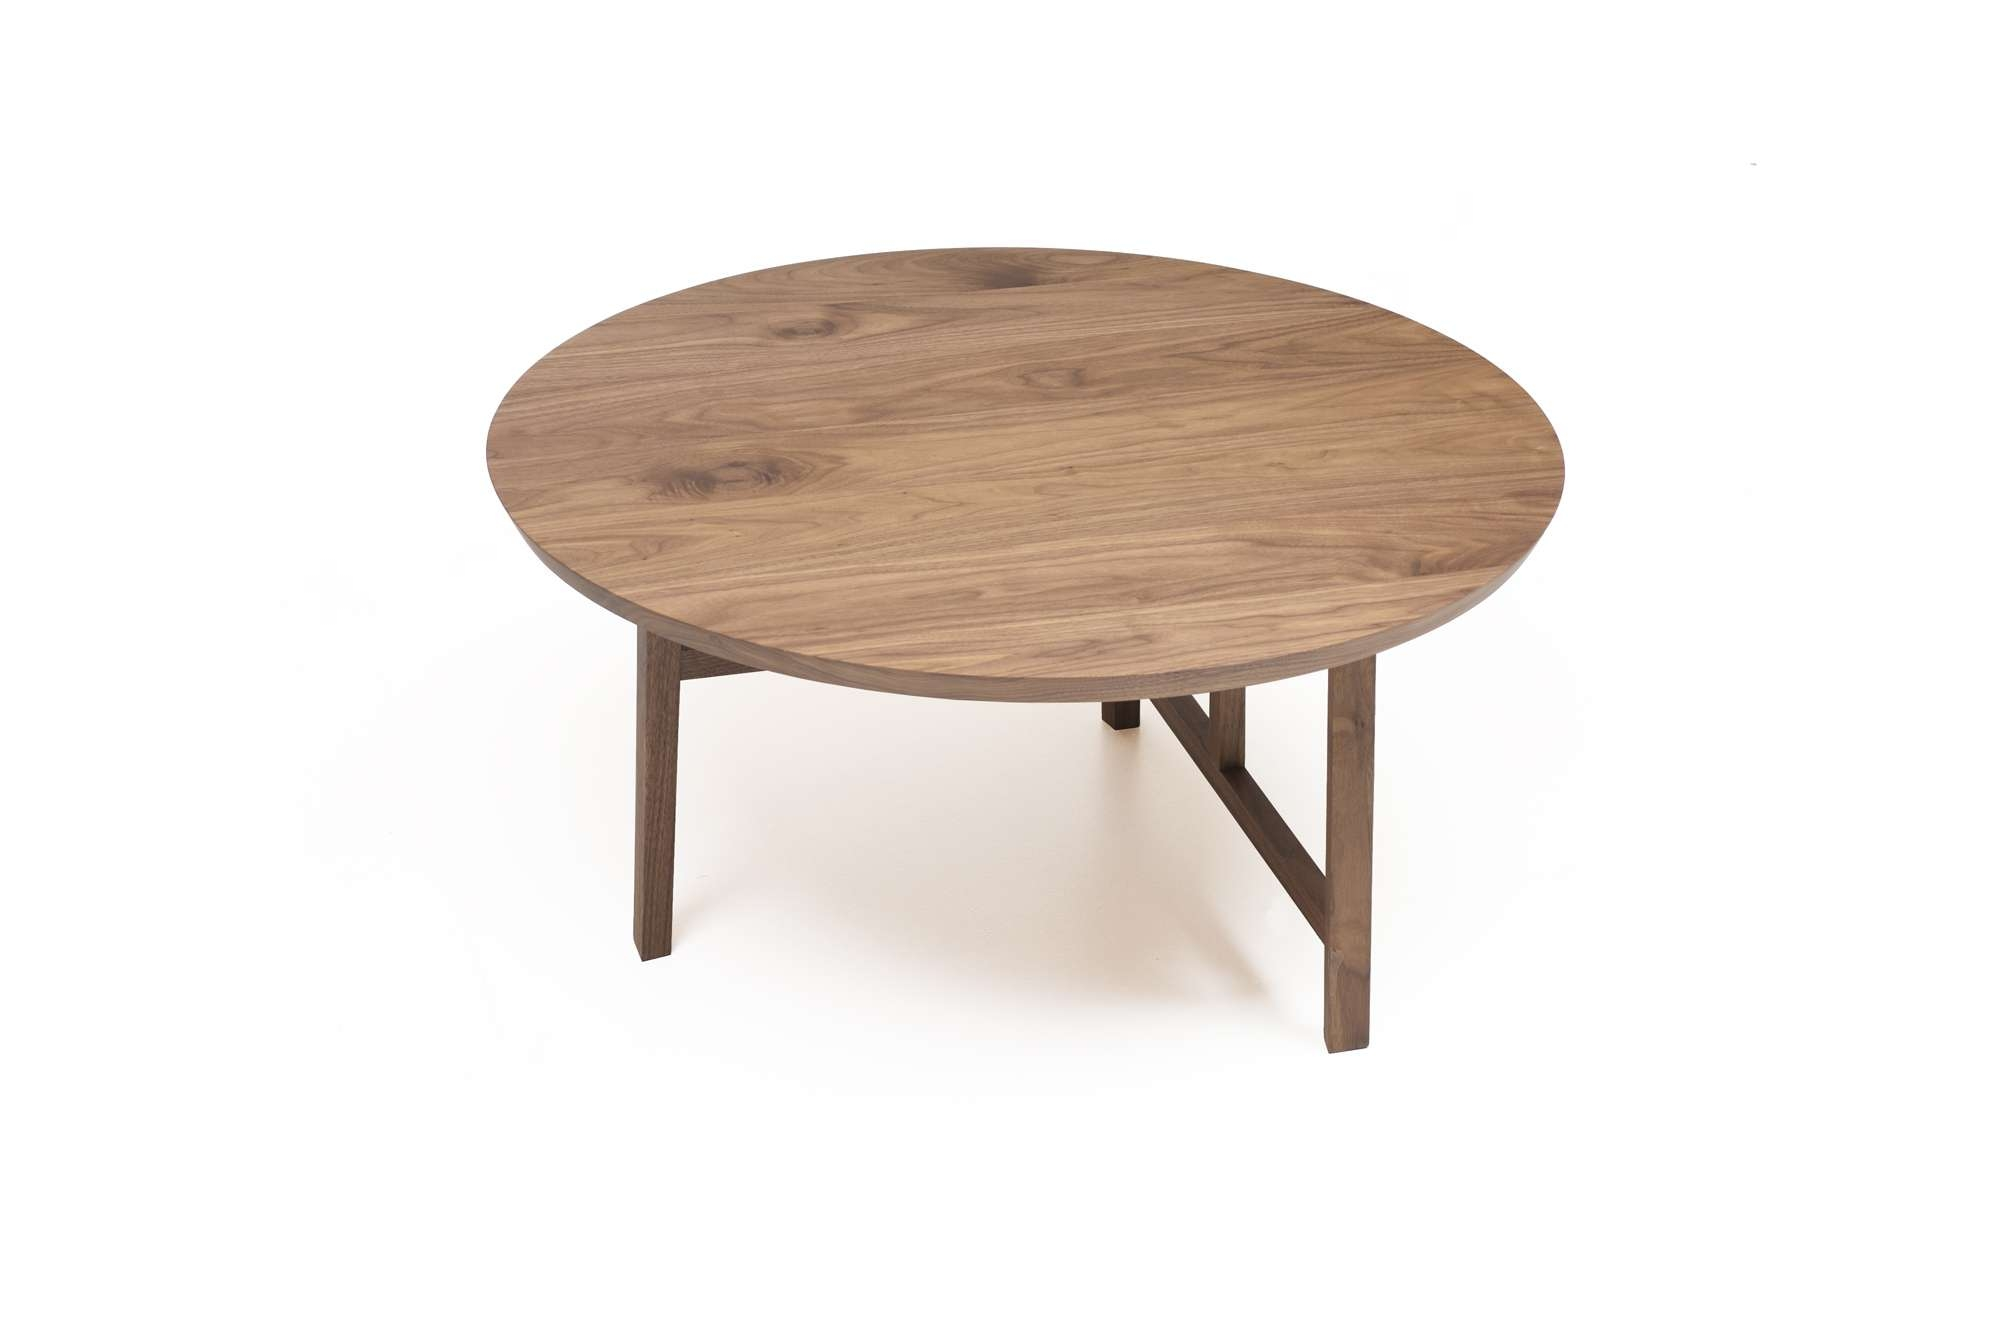 Small Circular Coffee Table – Round Shaped Coffee Table, Thick Within Most Up To Date Small Circular Coffee Table (View 15 of 20)